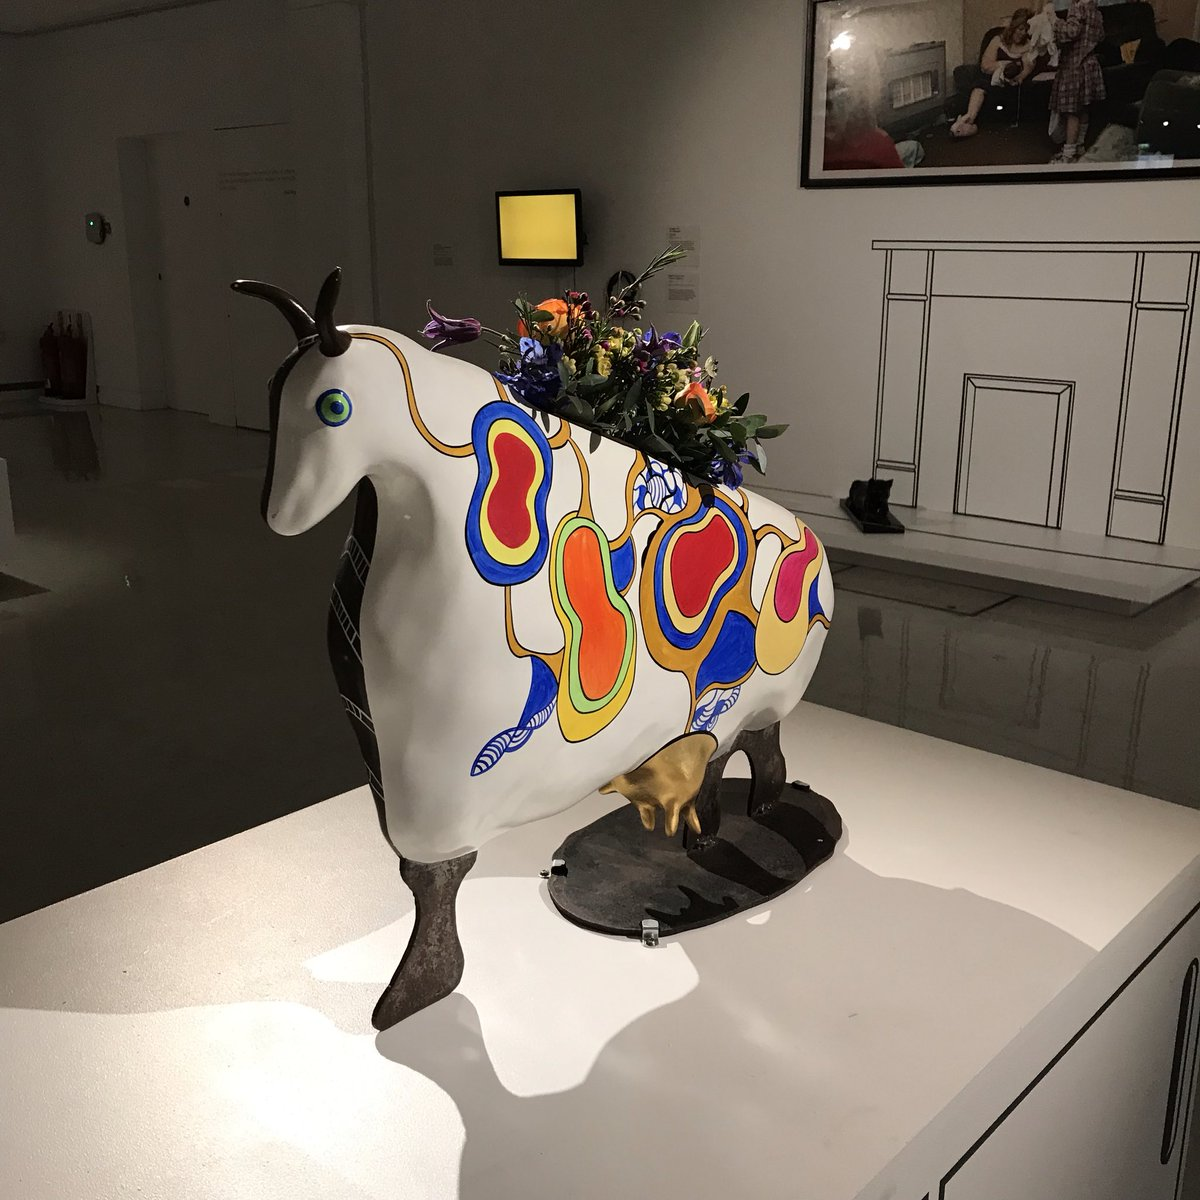 Also appears with flowers #VacheVase #DomesticBliss #NikideSaintPhalle <br>http://pic.twitter.com/wj2JguCaIs